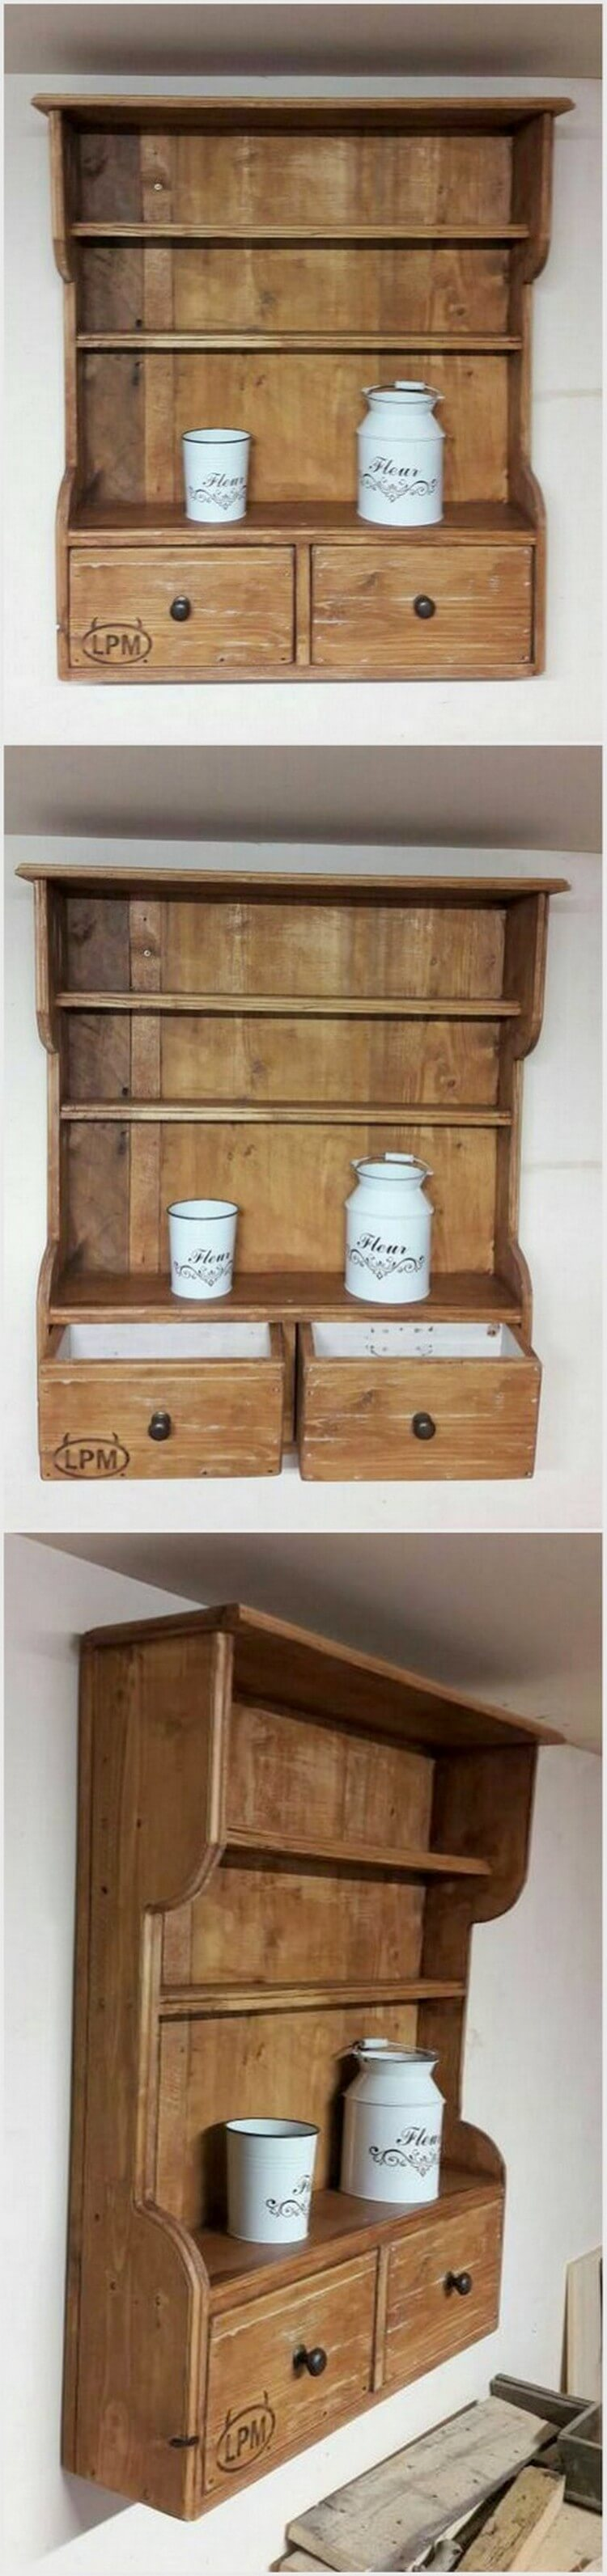 Pallet Wall Shelf with Drawers